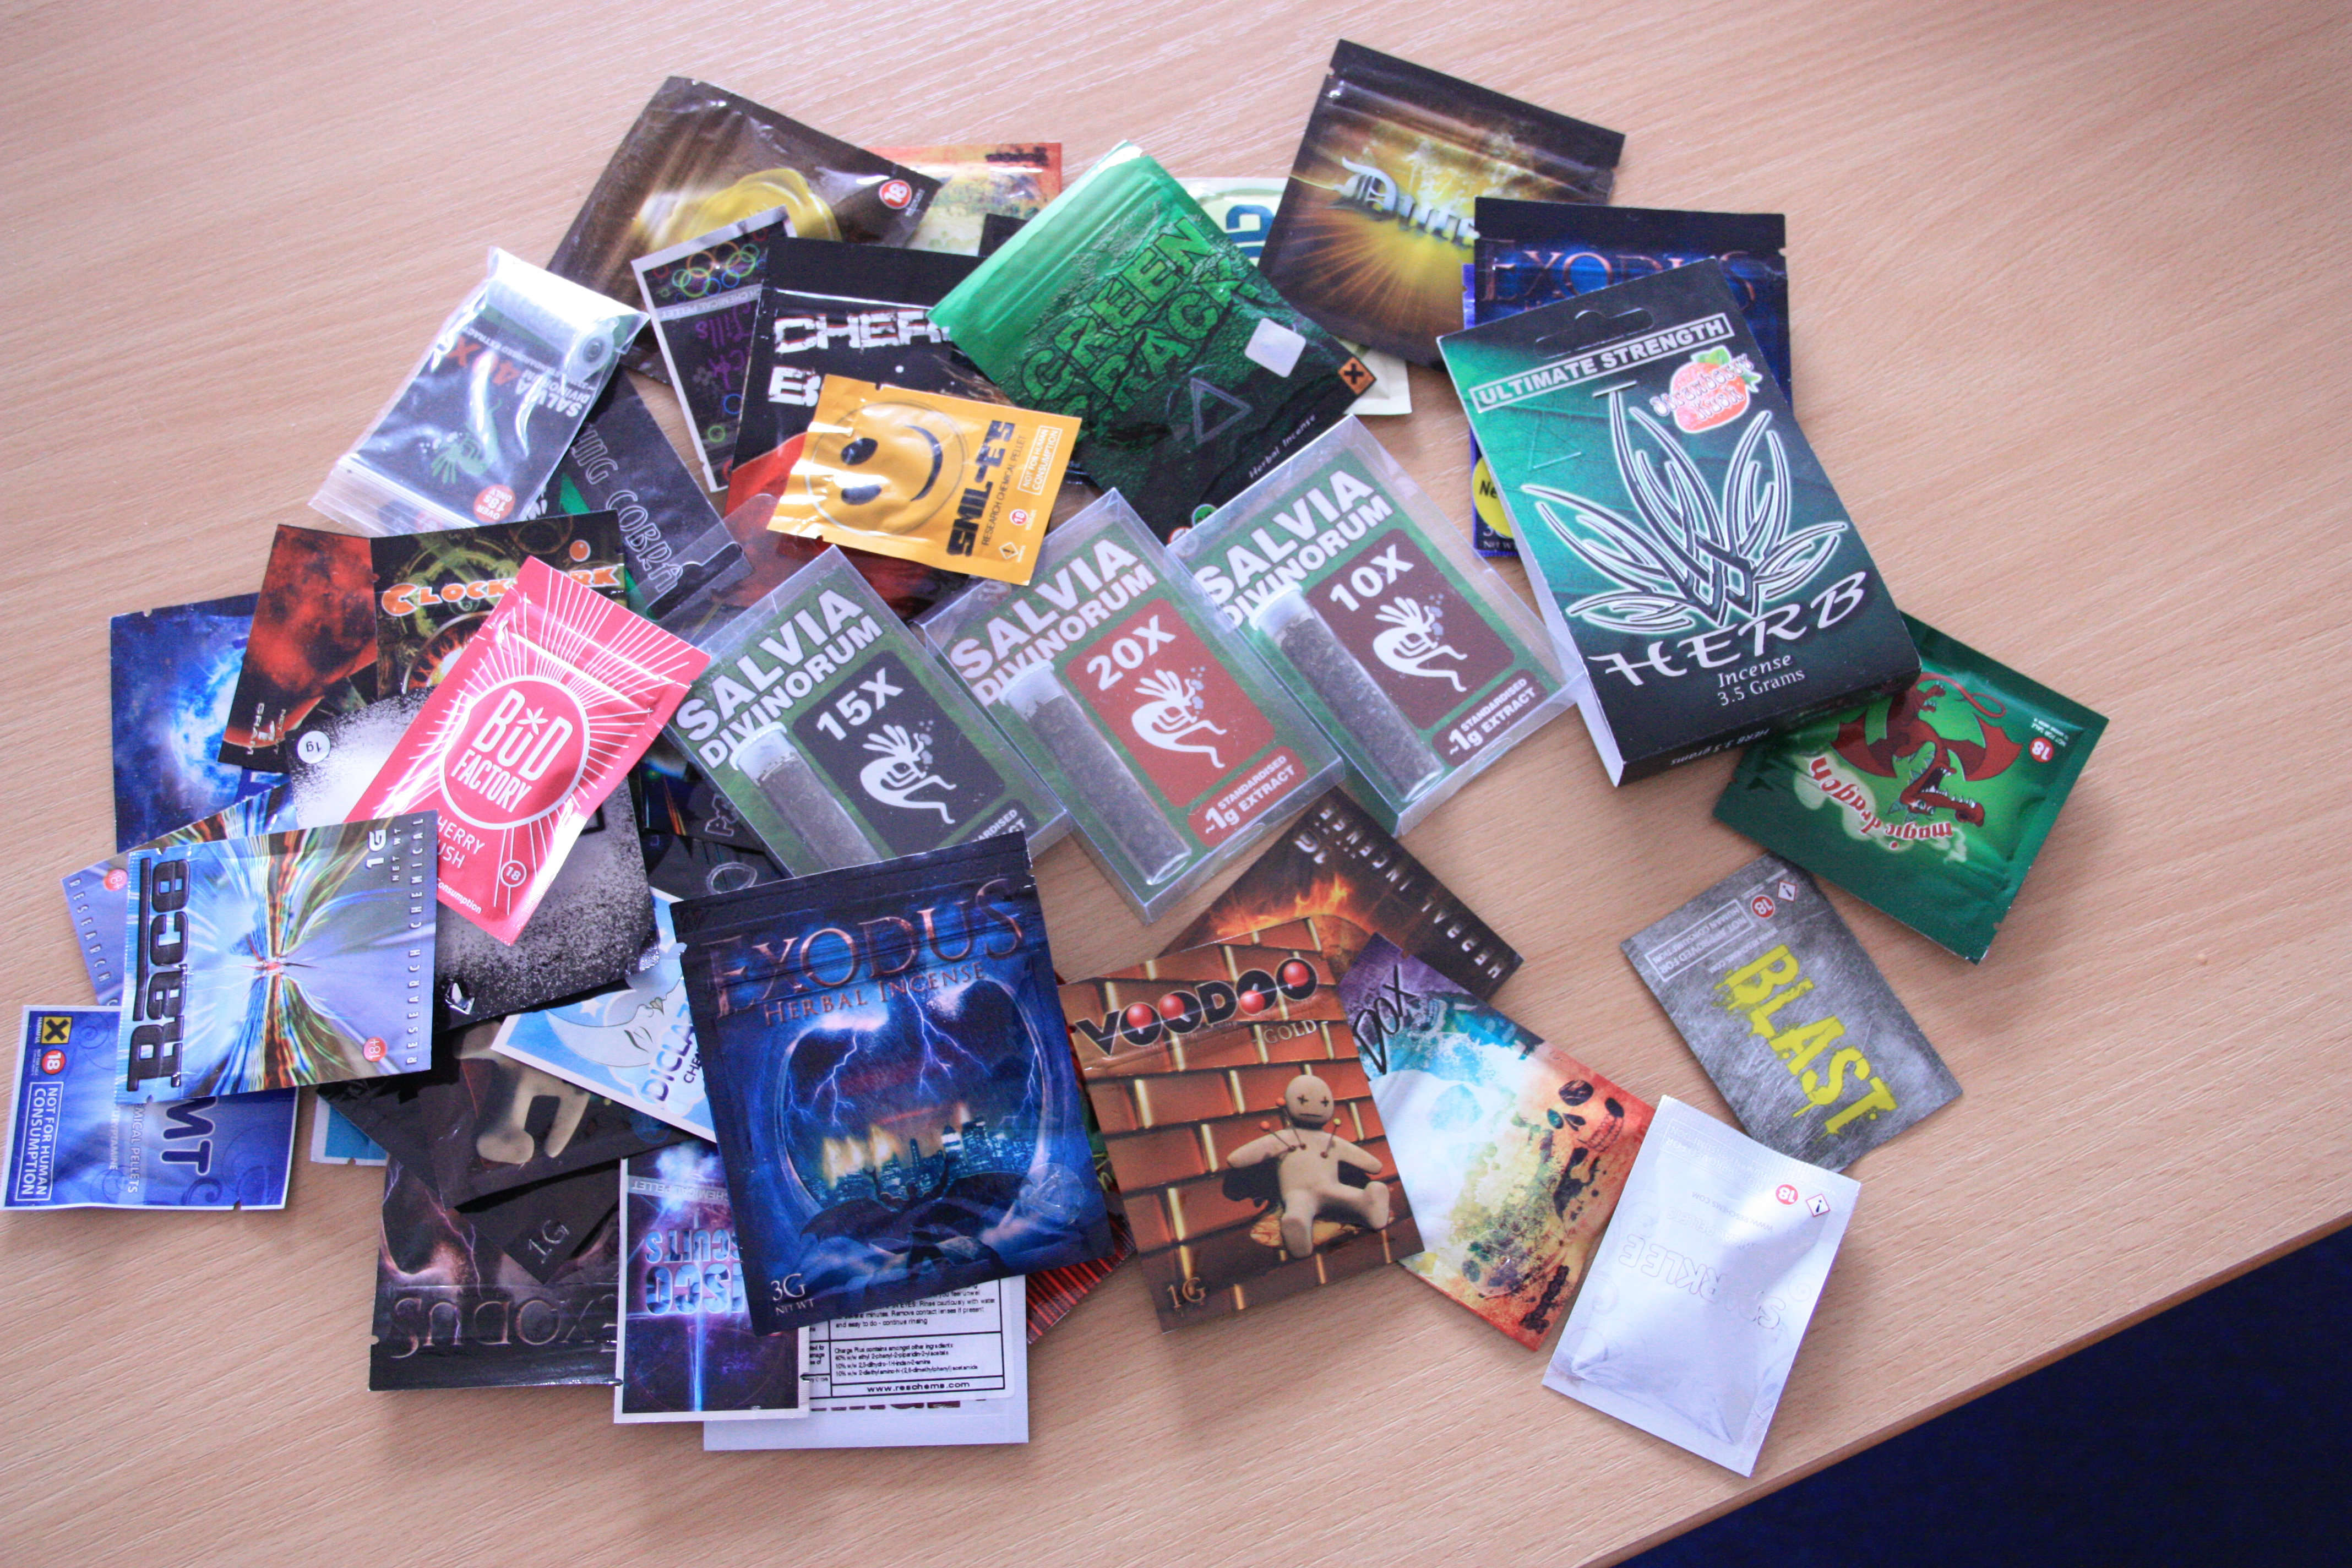 Court agrees 'legal highs' are not legal after all